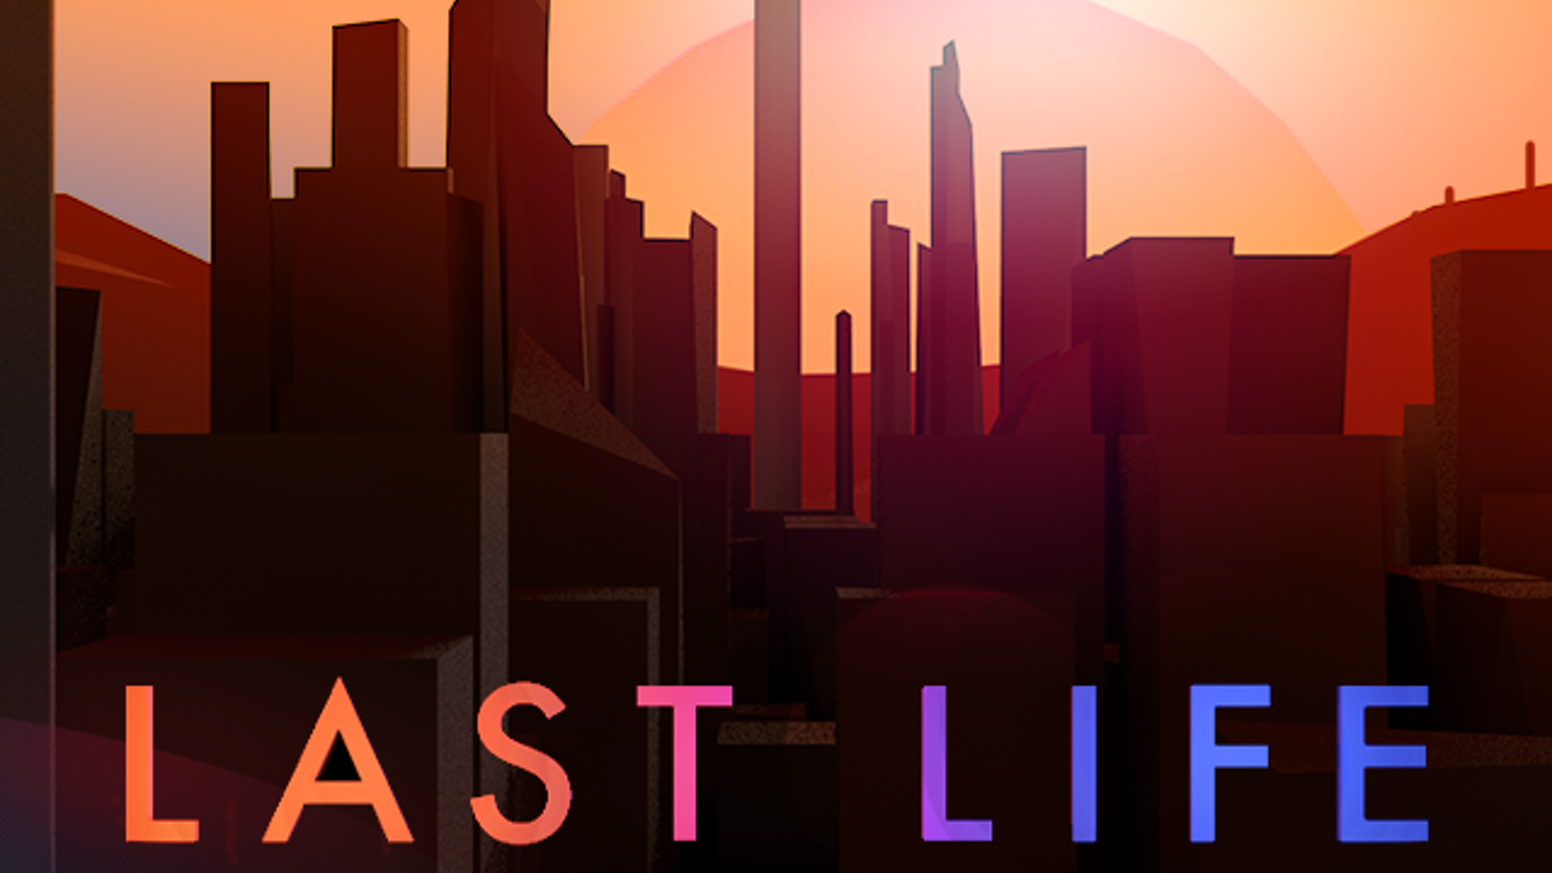 A sci-fi noir adventure game in which you investigate your own murder.